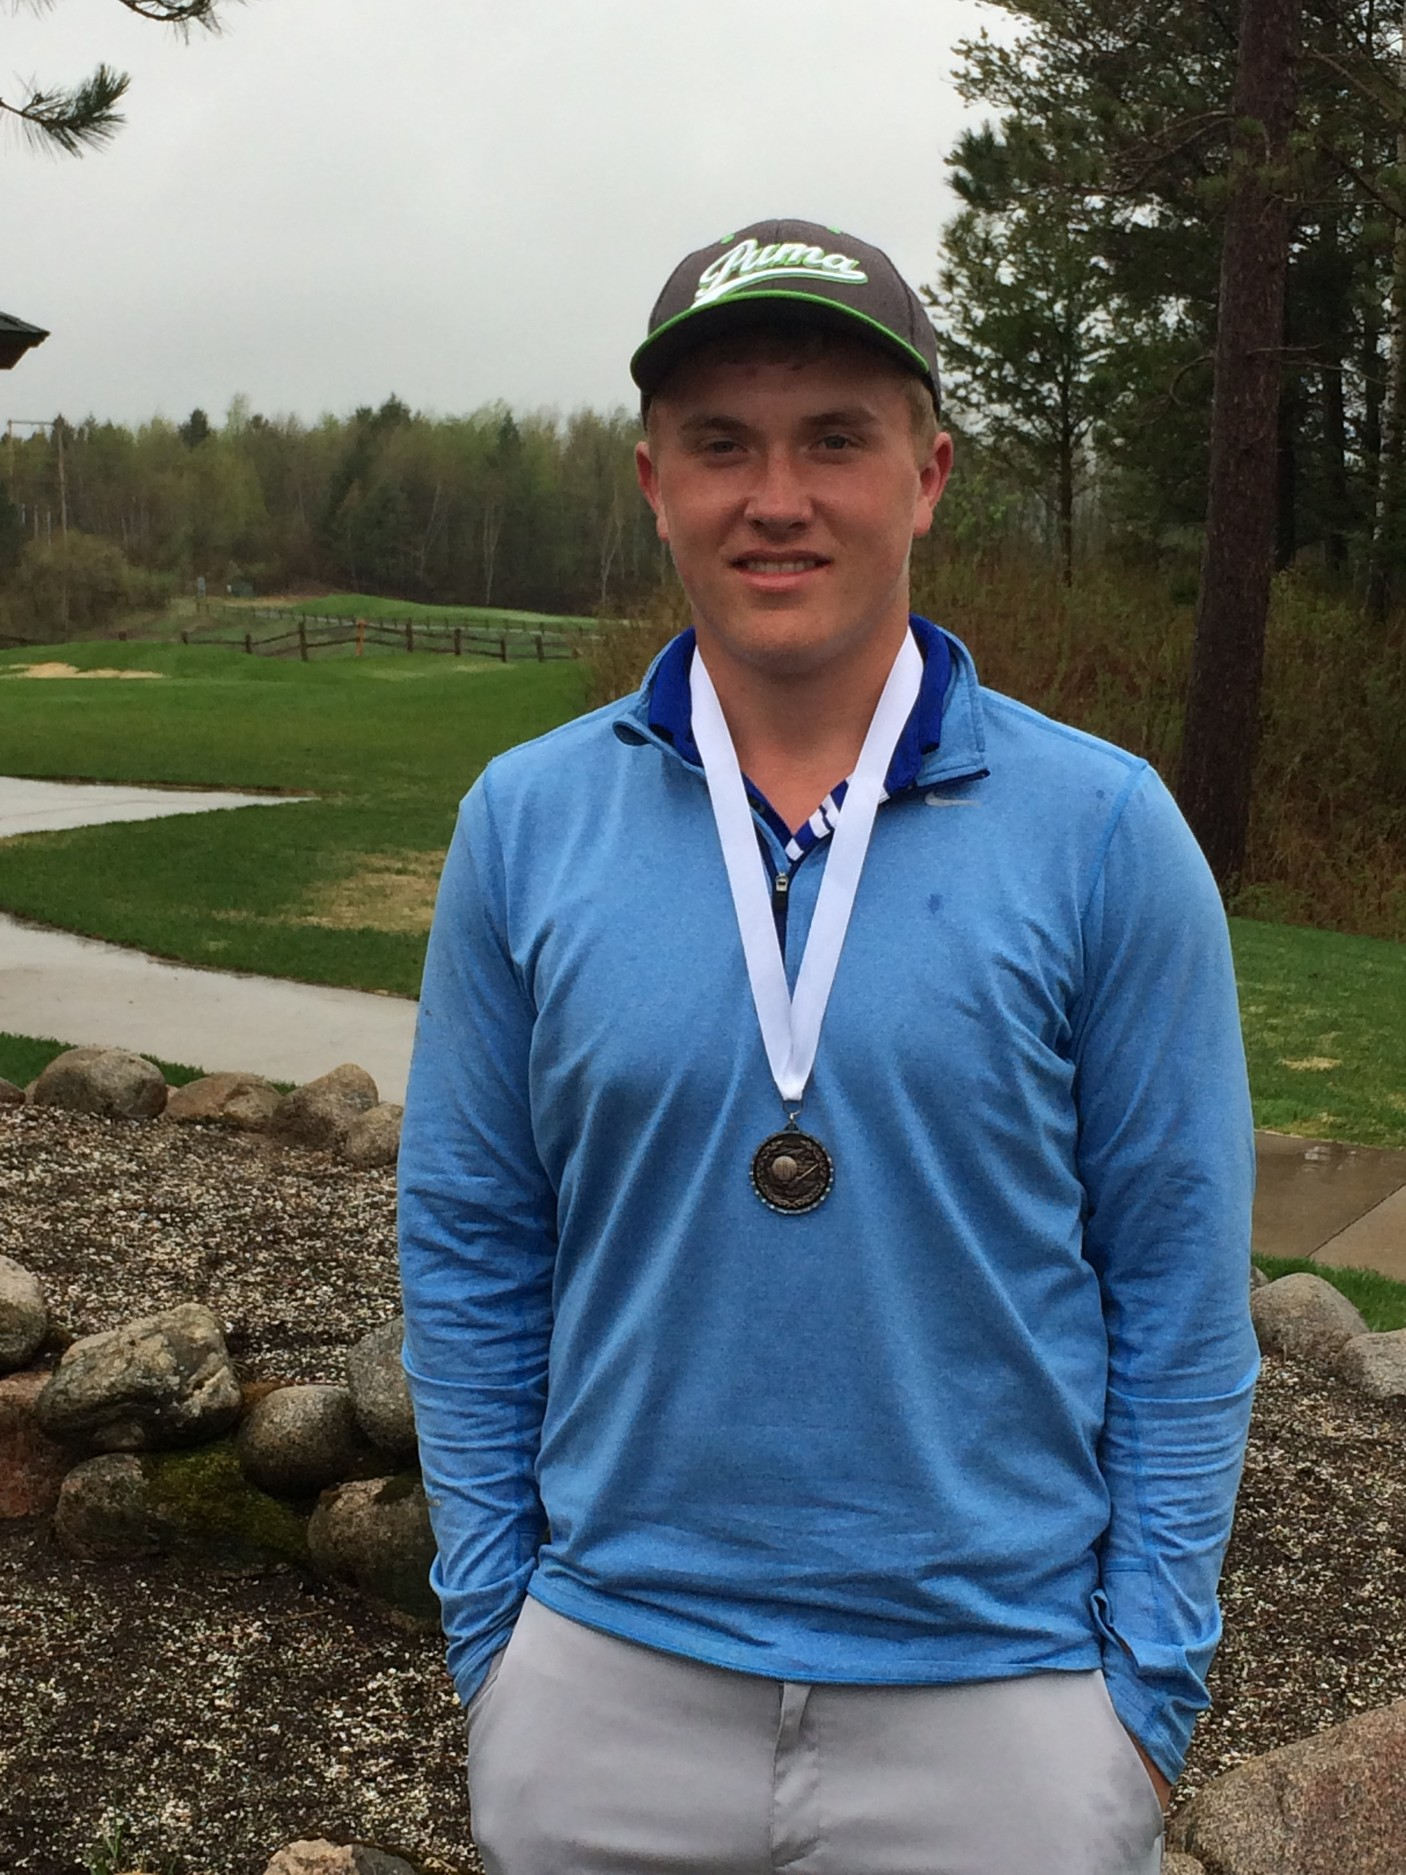 North Woods junior Tate Olson won the East Range Conference Tournament championship on Wednesday at The Quarry in Biwabik, shooting a round of 77.